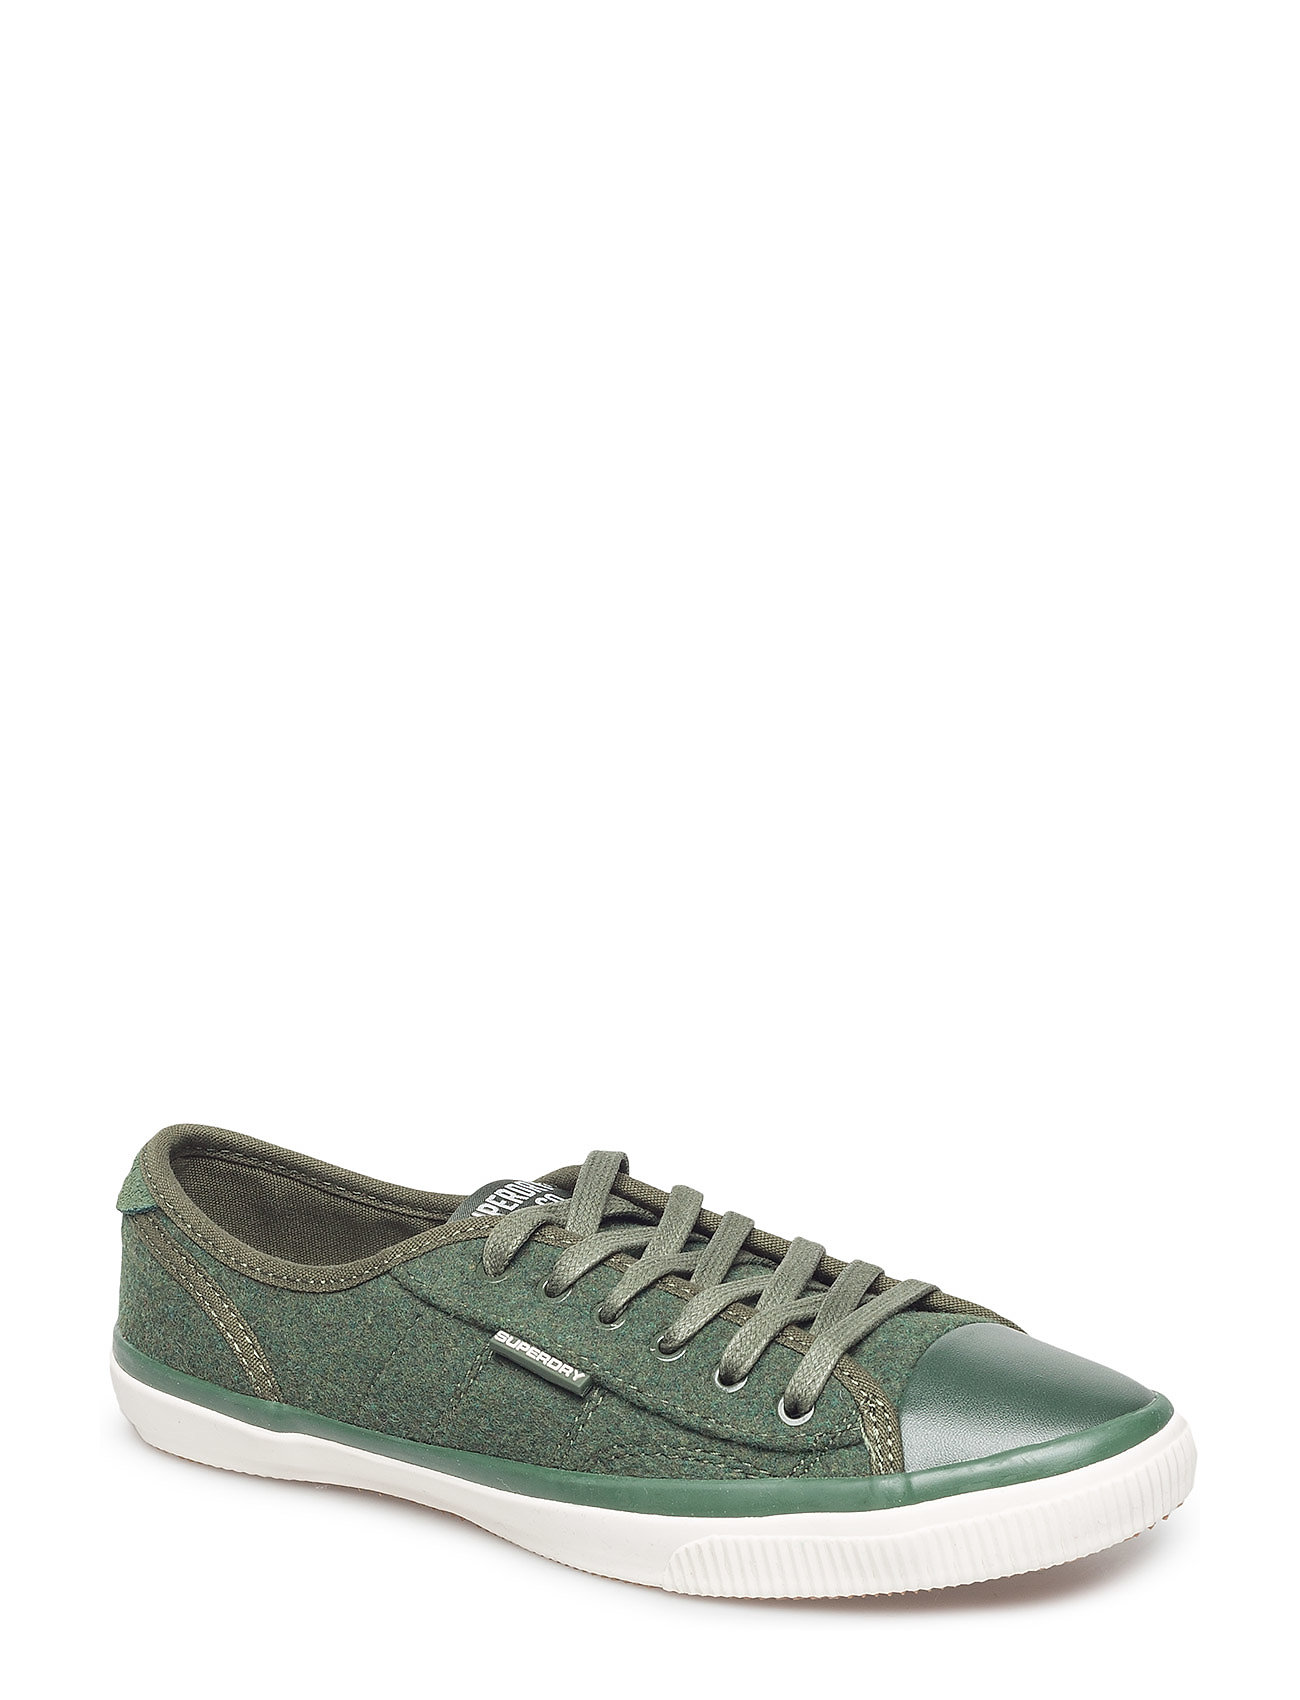 Image of Low Pro Luxe Low-top Sneakers Grøn Superdry (3415491359)